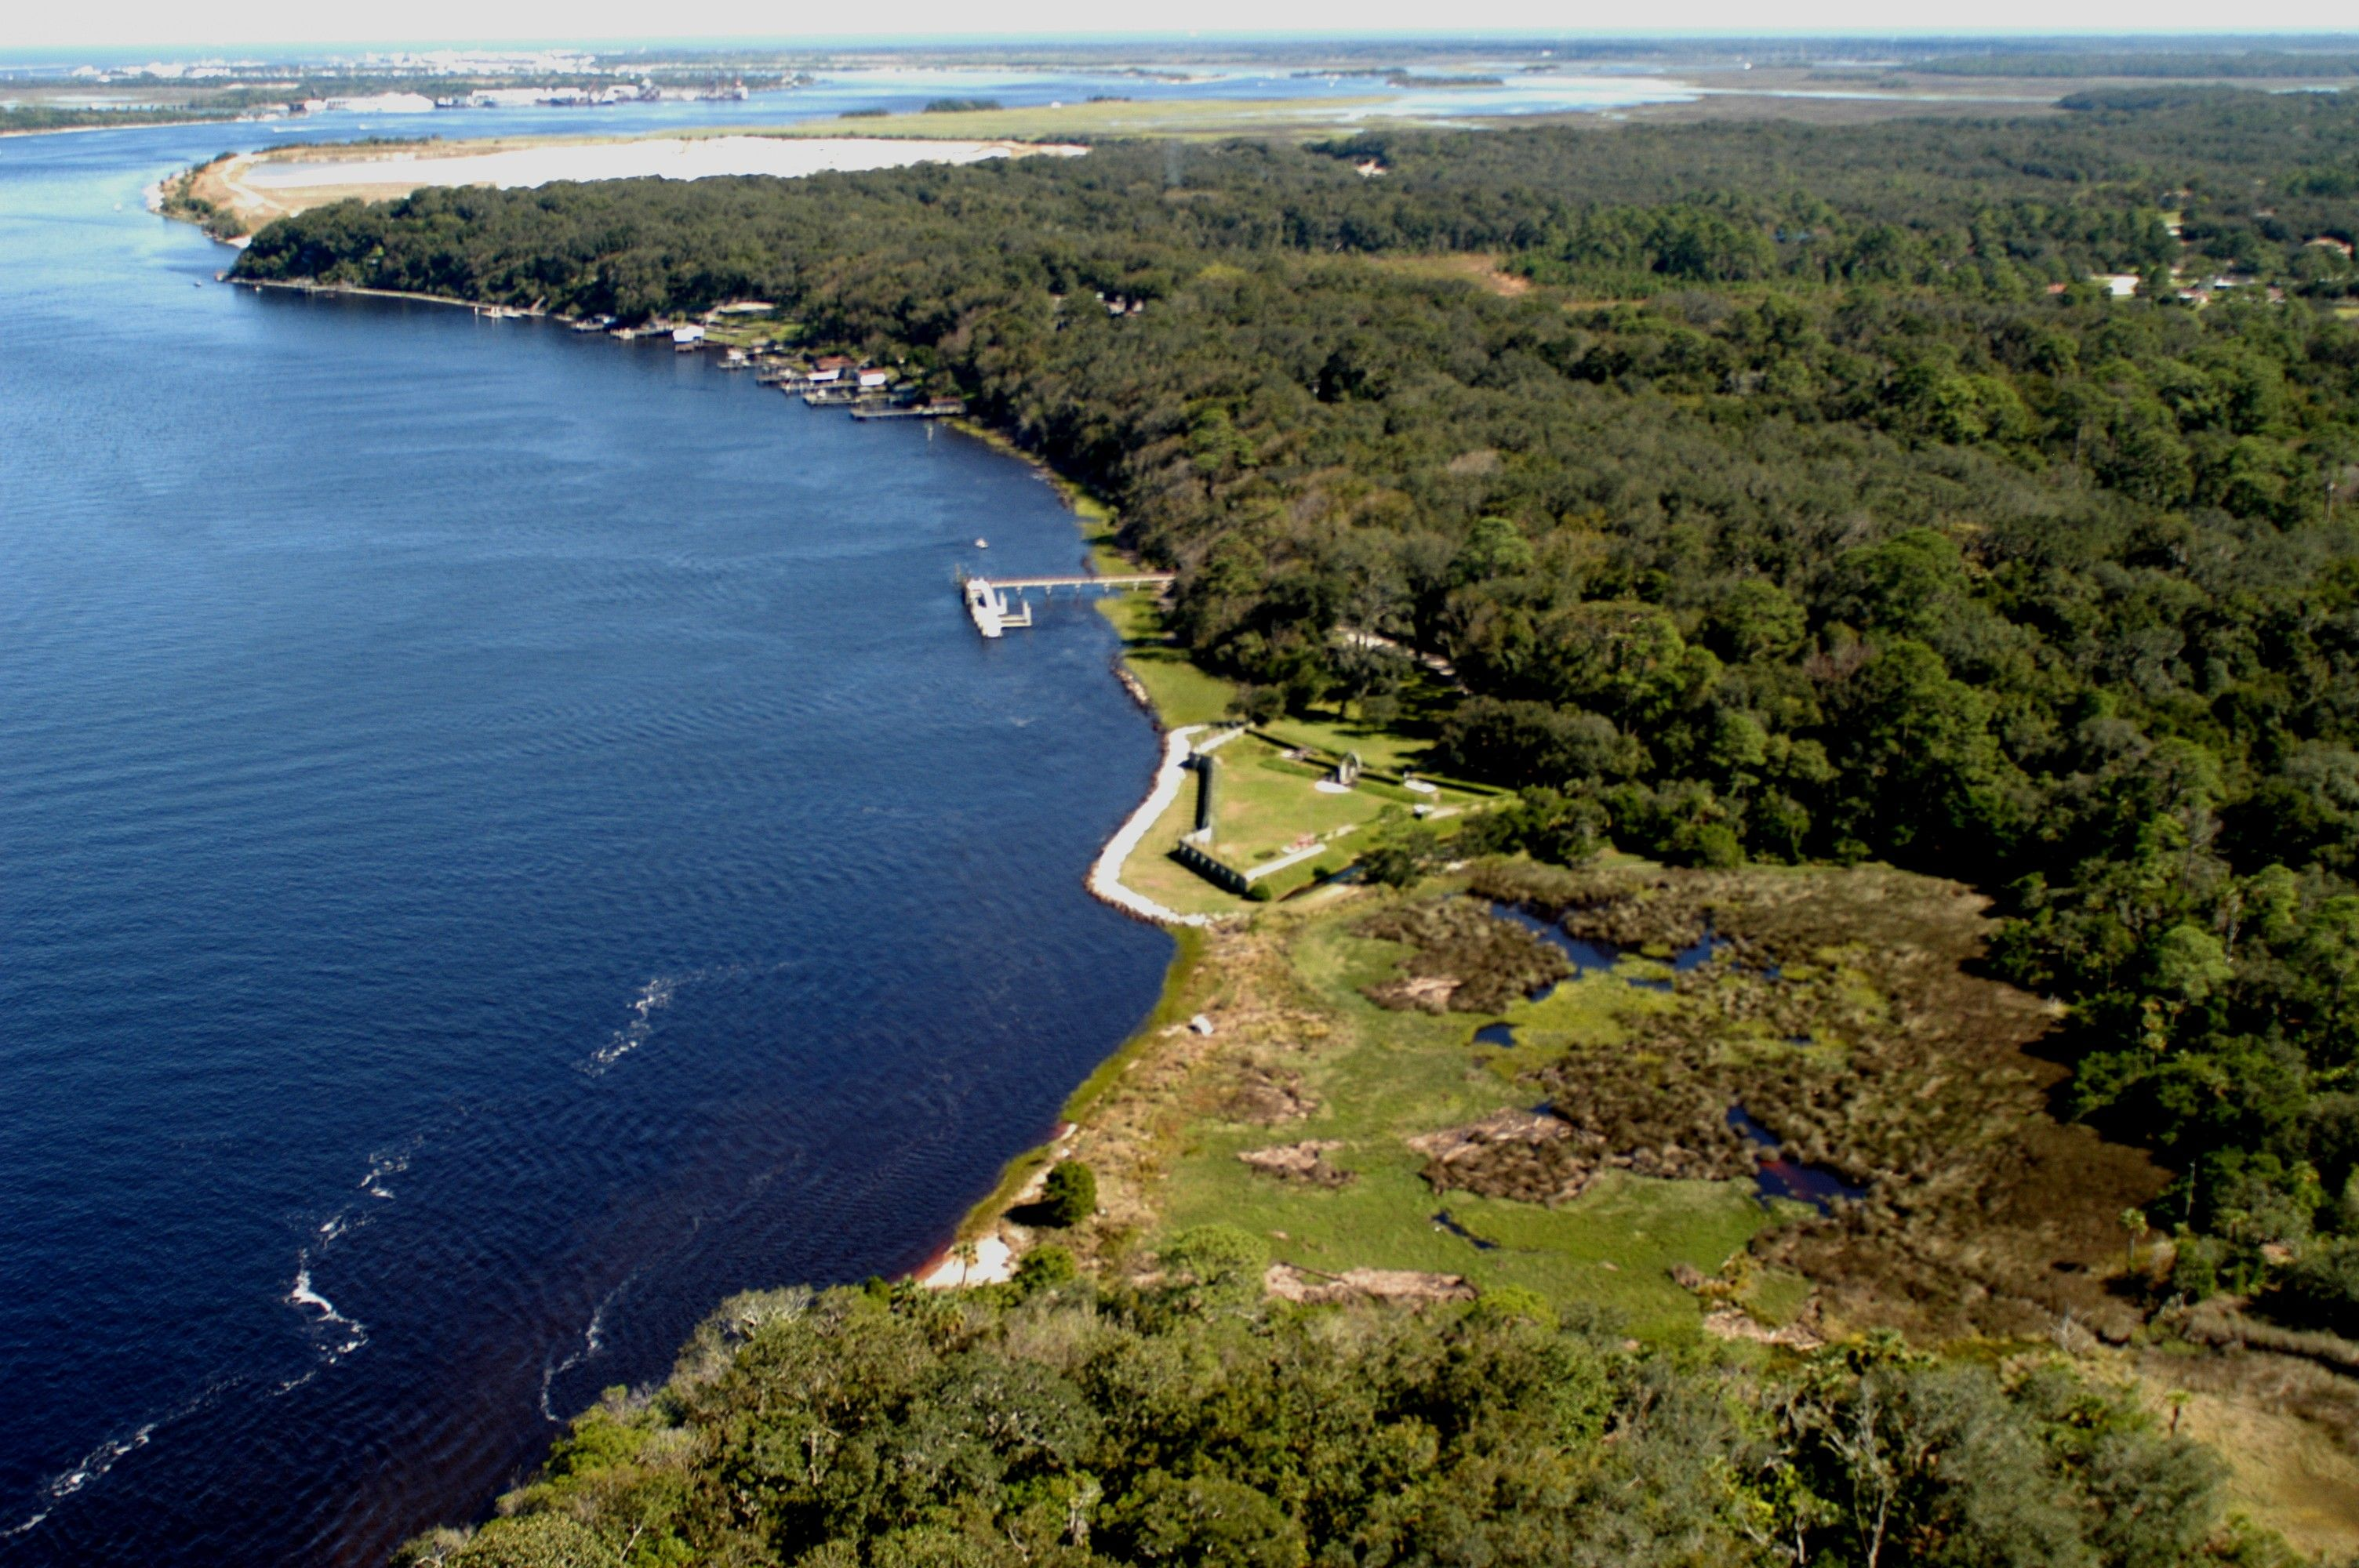 Part of the St. Johns River in Jacksonville, FL. This popular tourist destination is experiencing a major environmental concern due to a fertilizer runoff and failing septic tanks. http://www.aero-stream.com/septic-tank-improvements-can-protect-environment-save-homeowners-money/